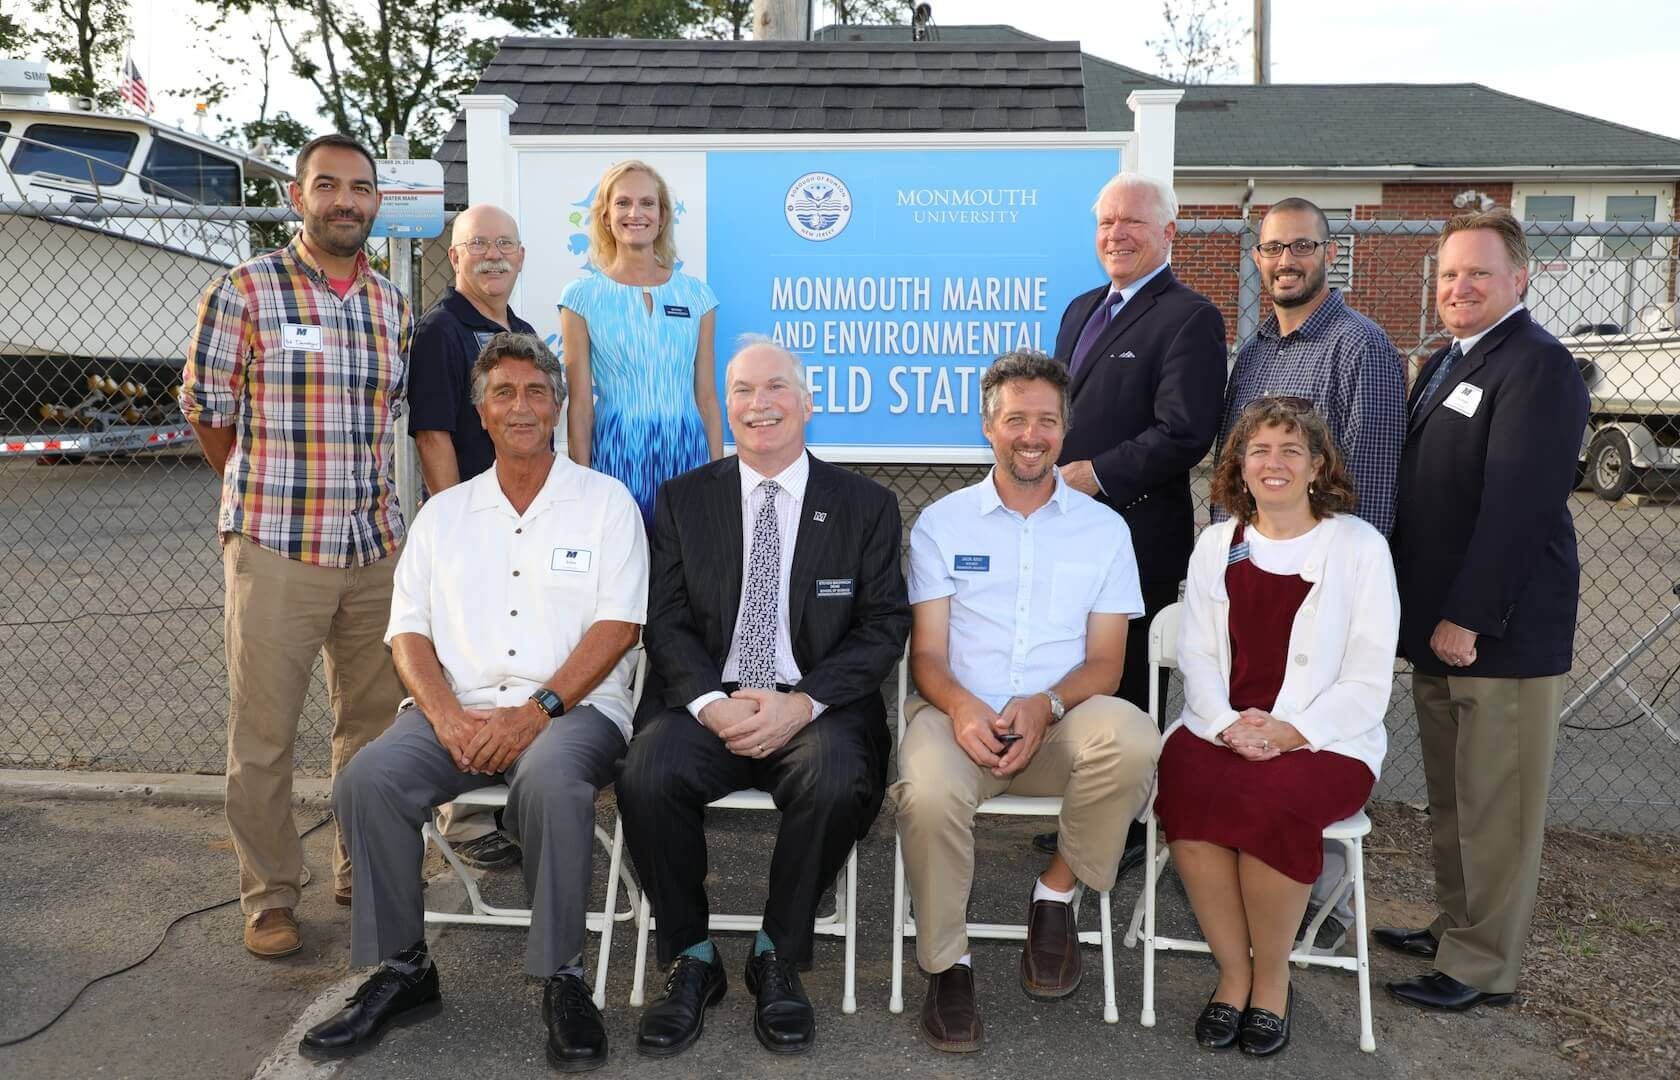 School of Science, Marine and Environmental Biology Policy Program and Urban Coast Institute administrators and faculty join other officials at a ribbon-cutting ceremony for the planned Monmouth Marine and Environmental Field Station in Rumson, NJ.